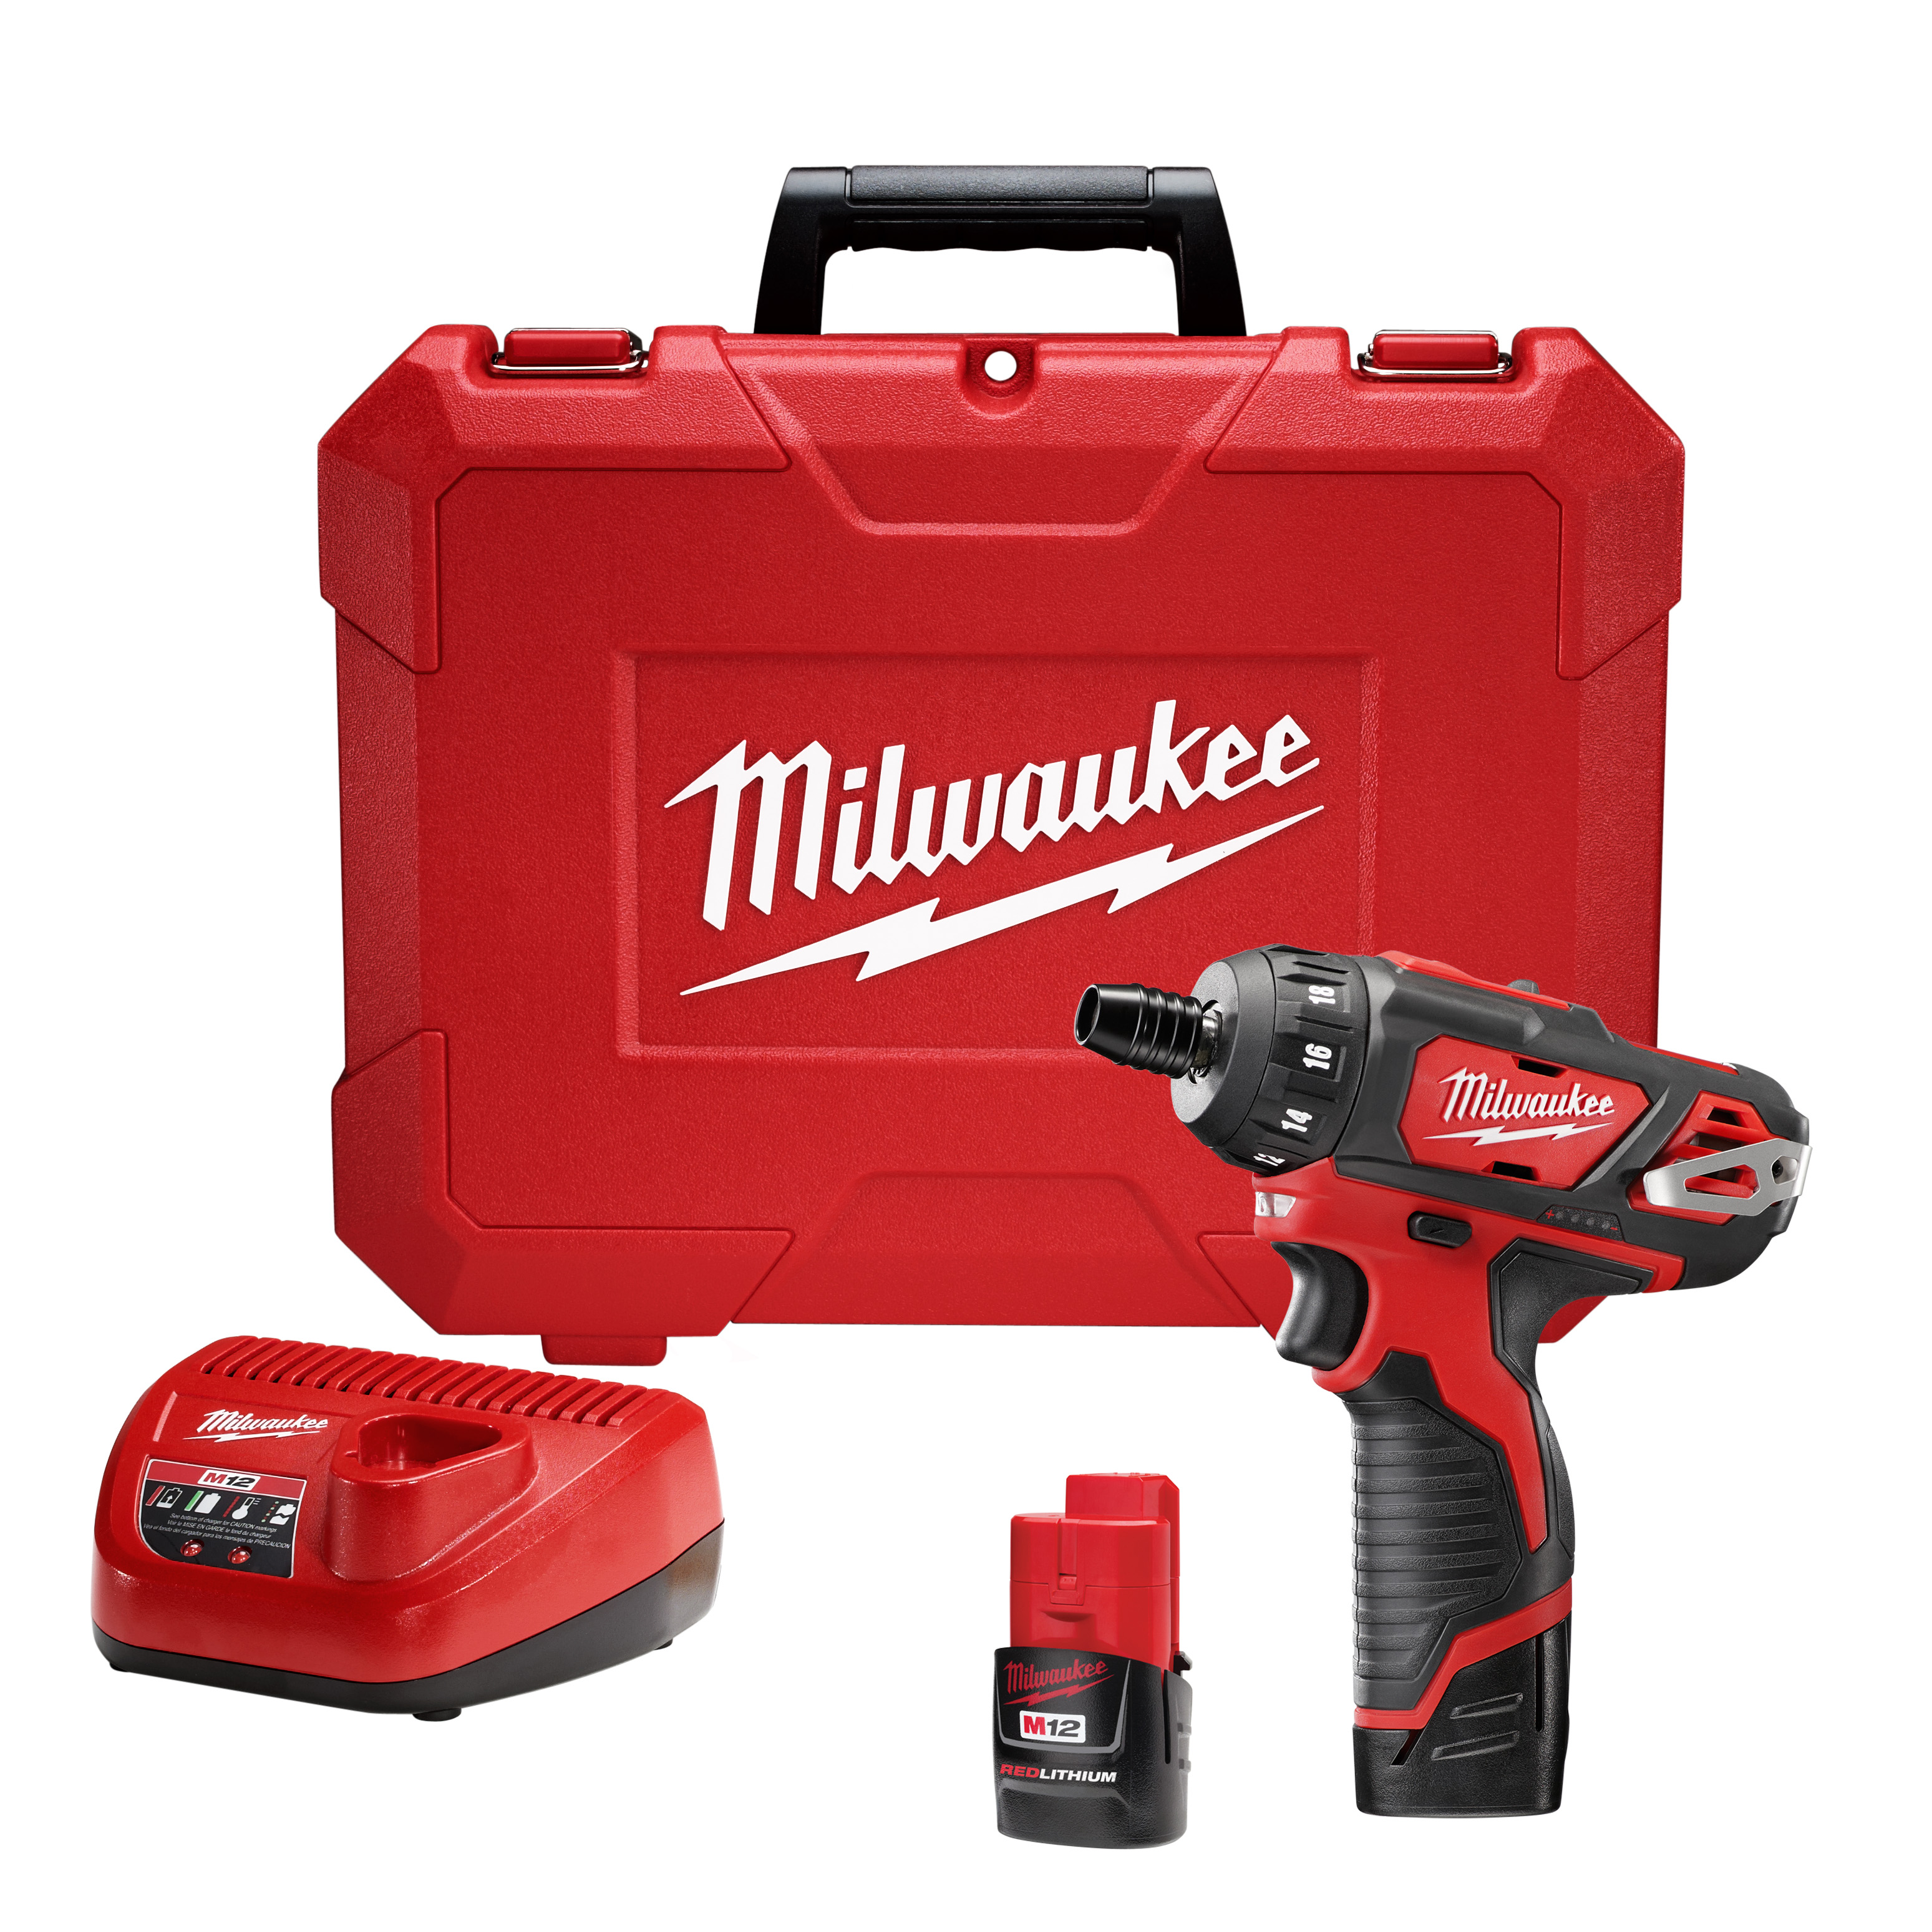 Milwaukee® 2401-22 M12™ Compact Lightweight Cordless Screwdriver Kit, 1/4 in Chuck, 12 VDC, 150 in-lb Torque, Lithium-Ion Battery